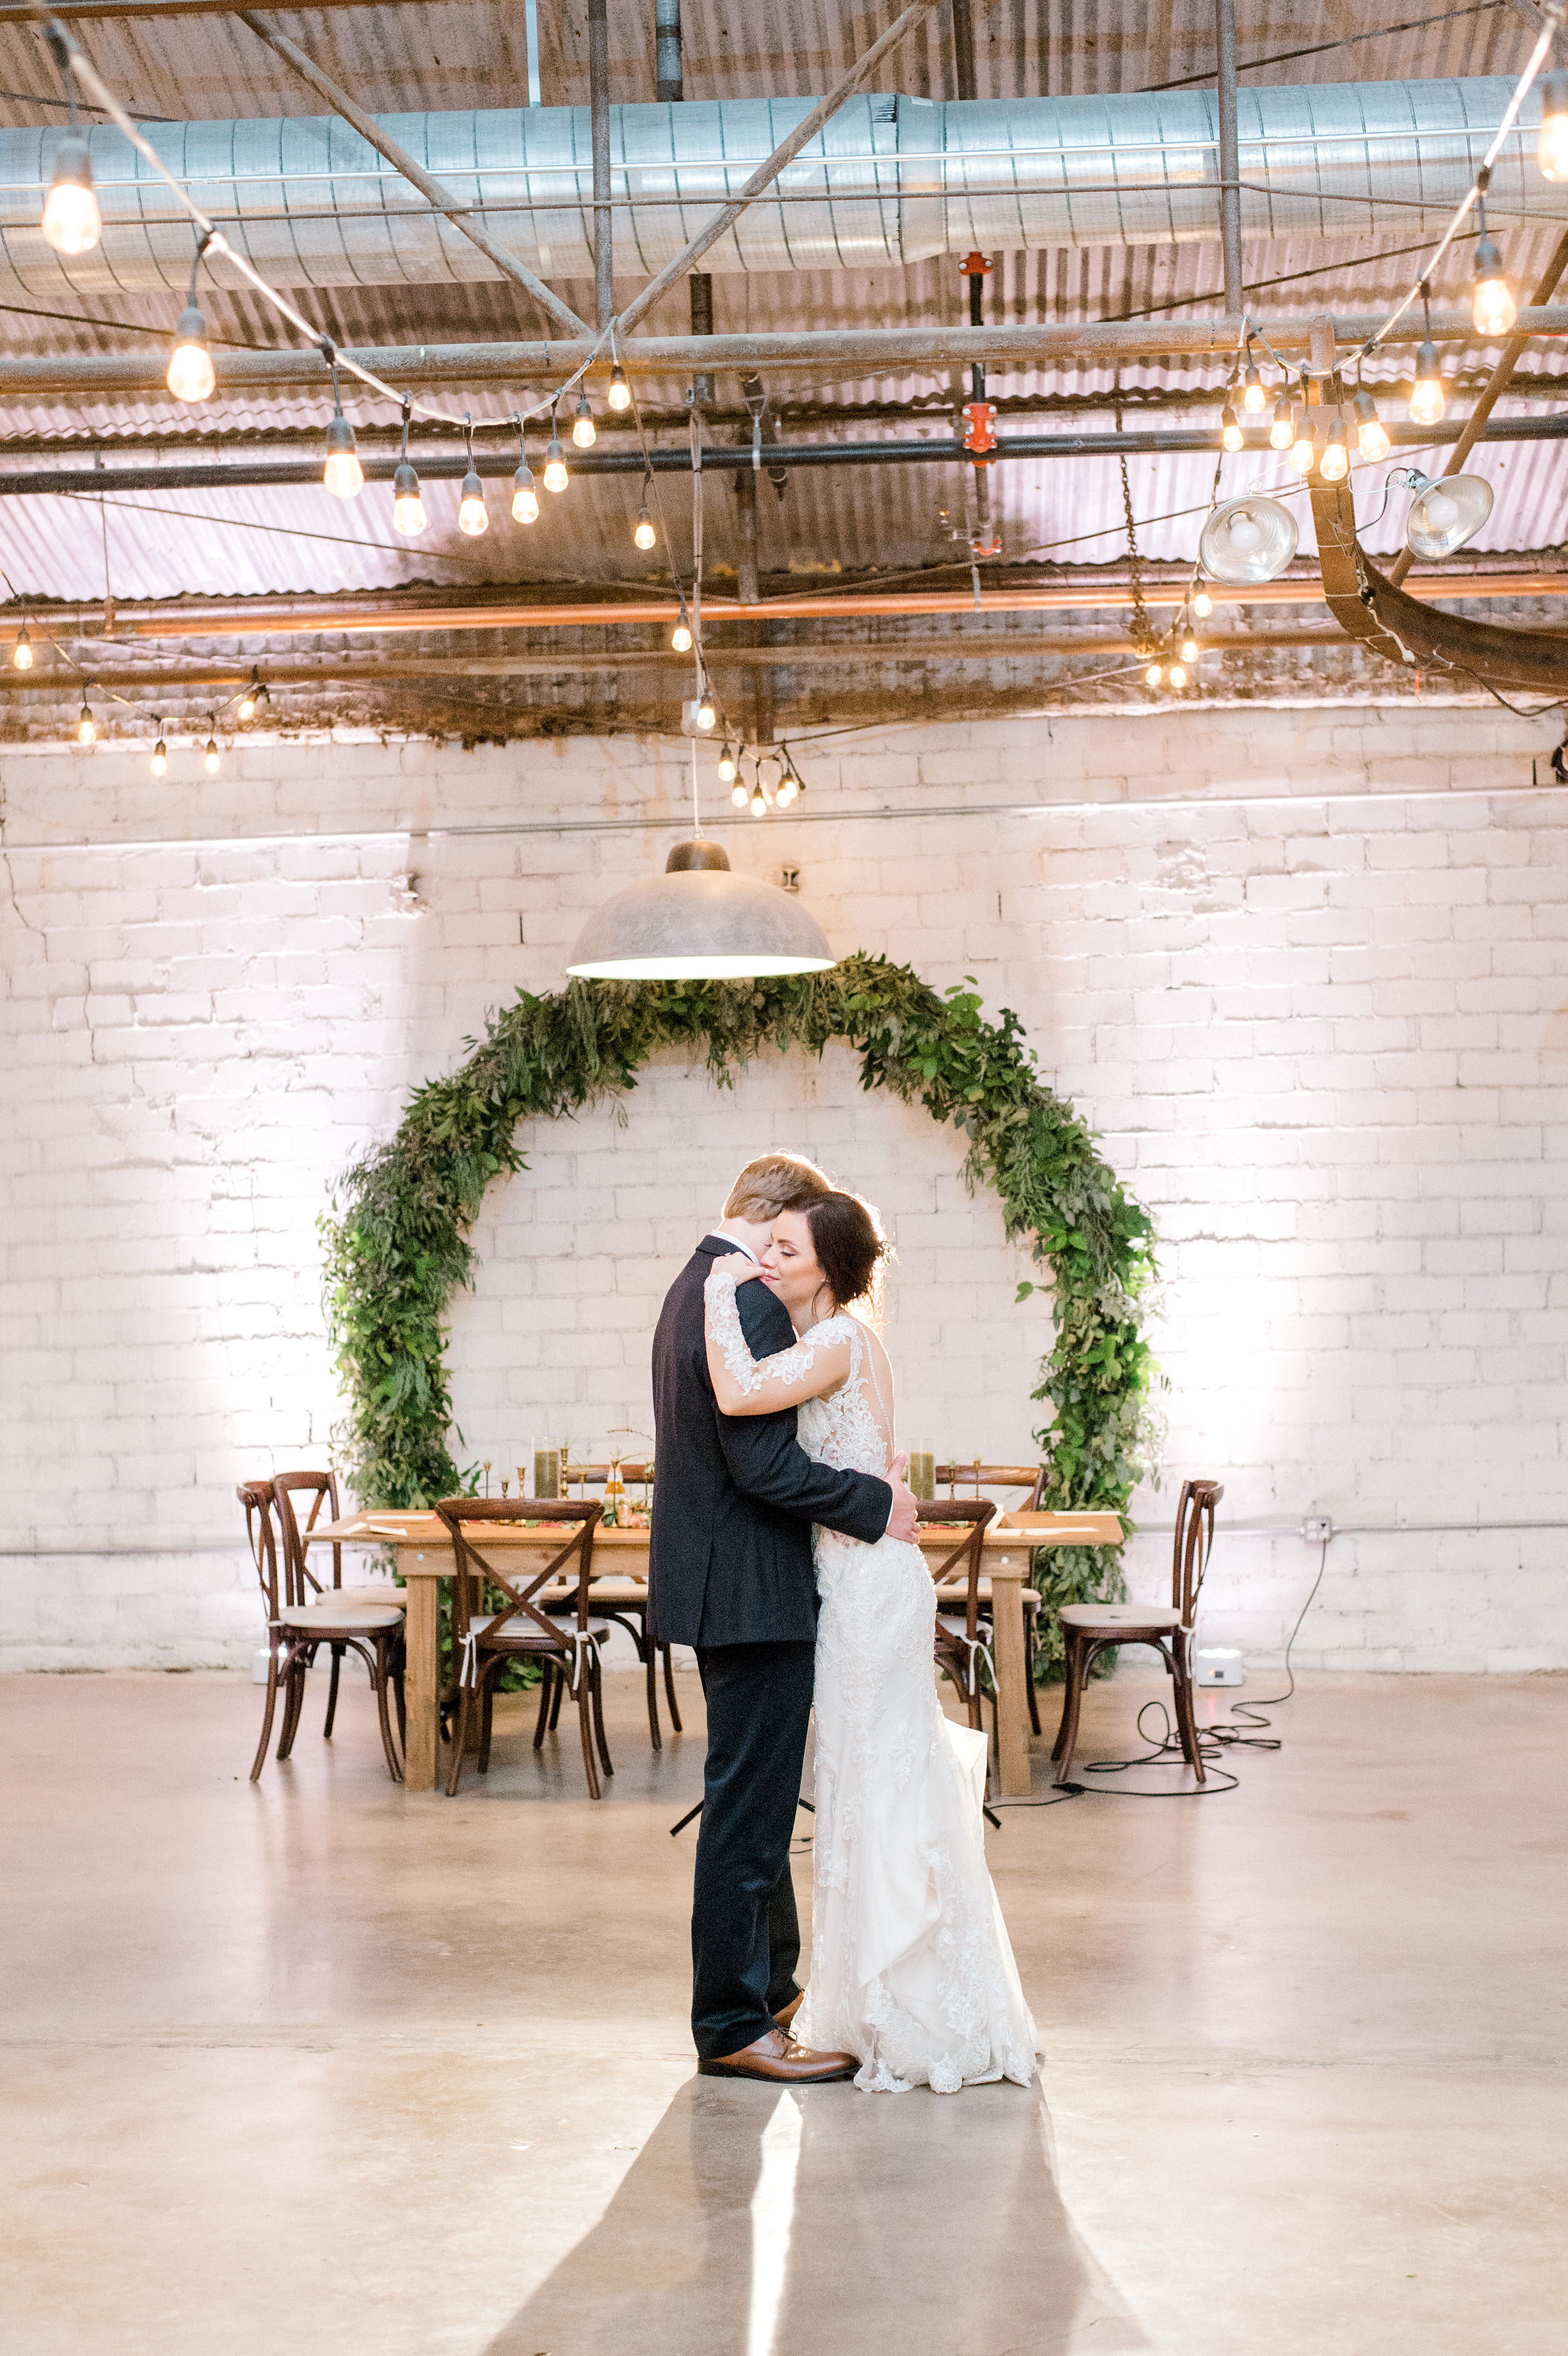 Bride and Groom Last Dance | Modern Industrial Fall Wedding Reception in Downtown Fort Worth